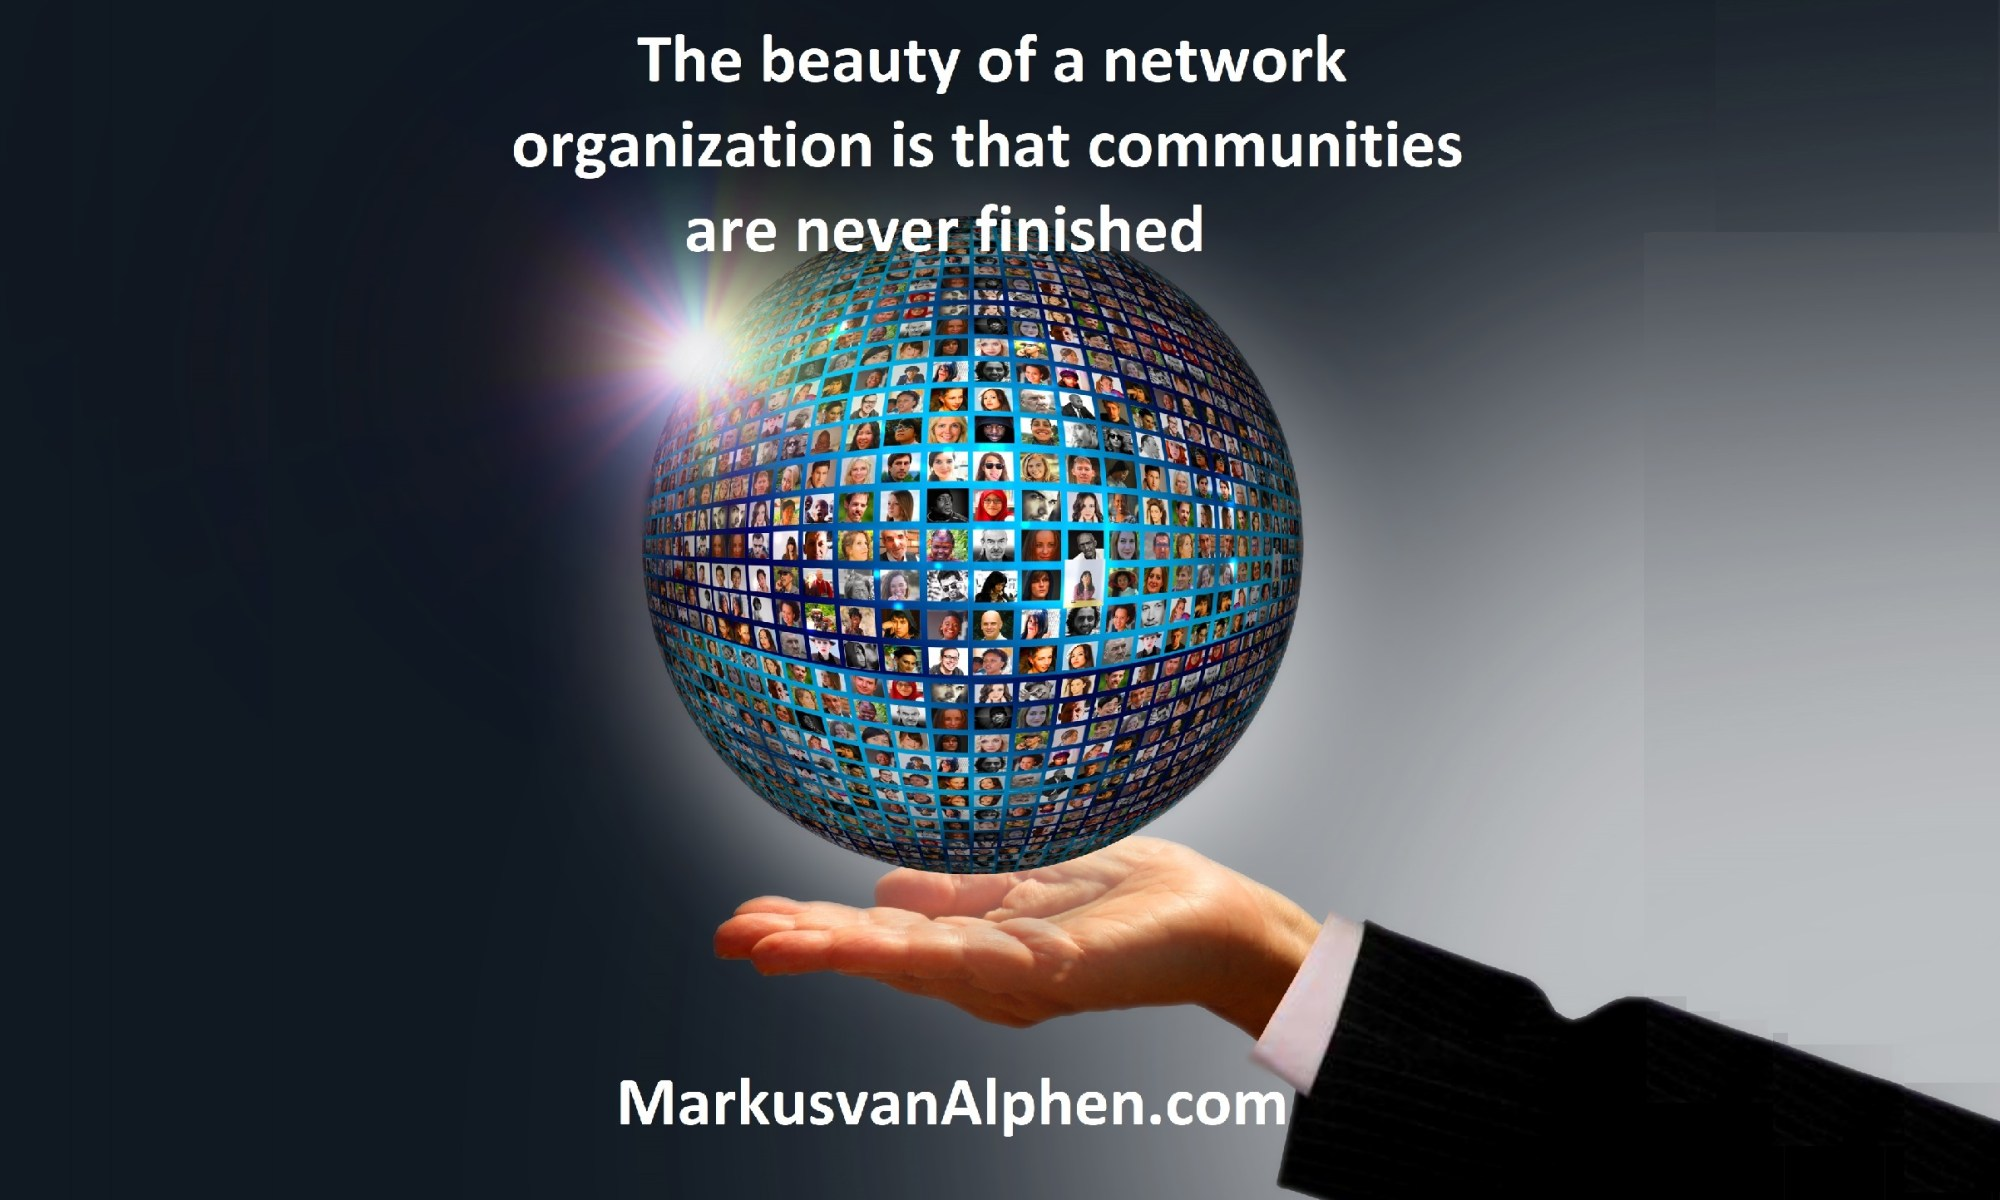 Leading towards a network organization- MarkusvanAlphen.com